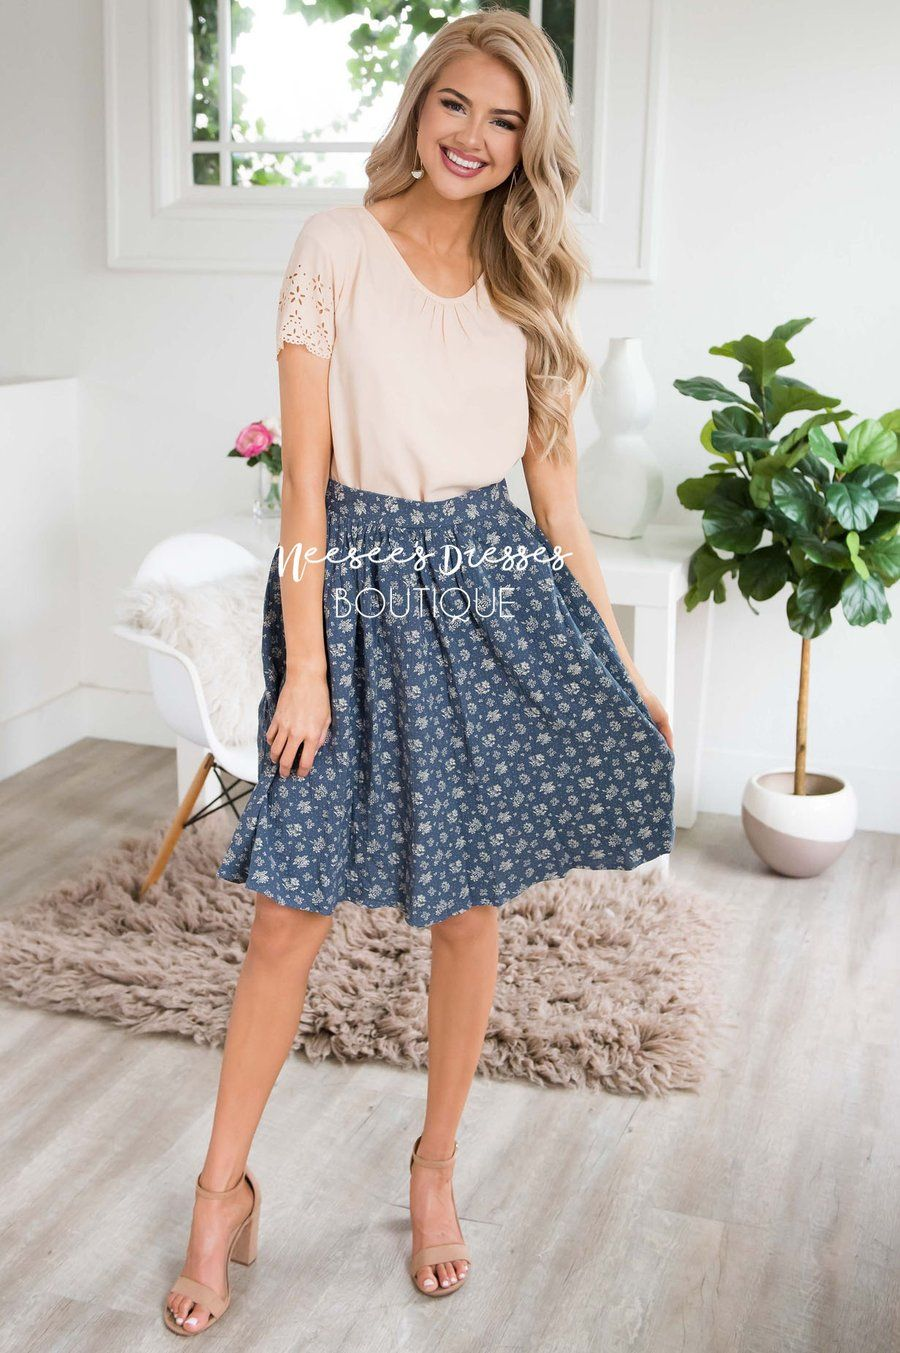 Dusty Pink Powder Blue Floral Chiffon Skirt Skirt Outfits Trendy Spring Outfits Modest Dresses